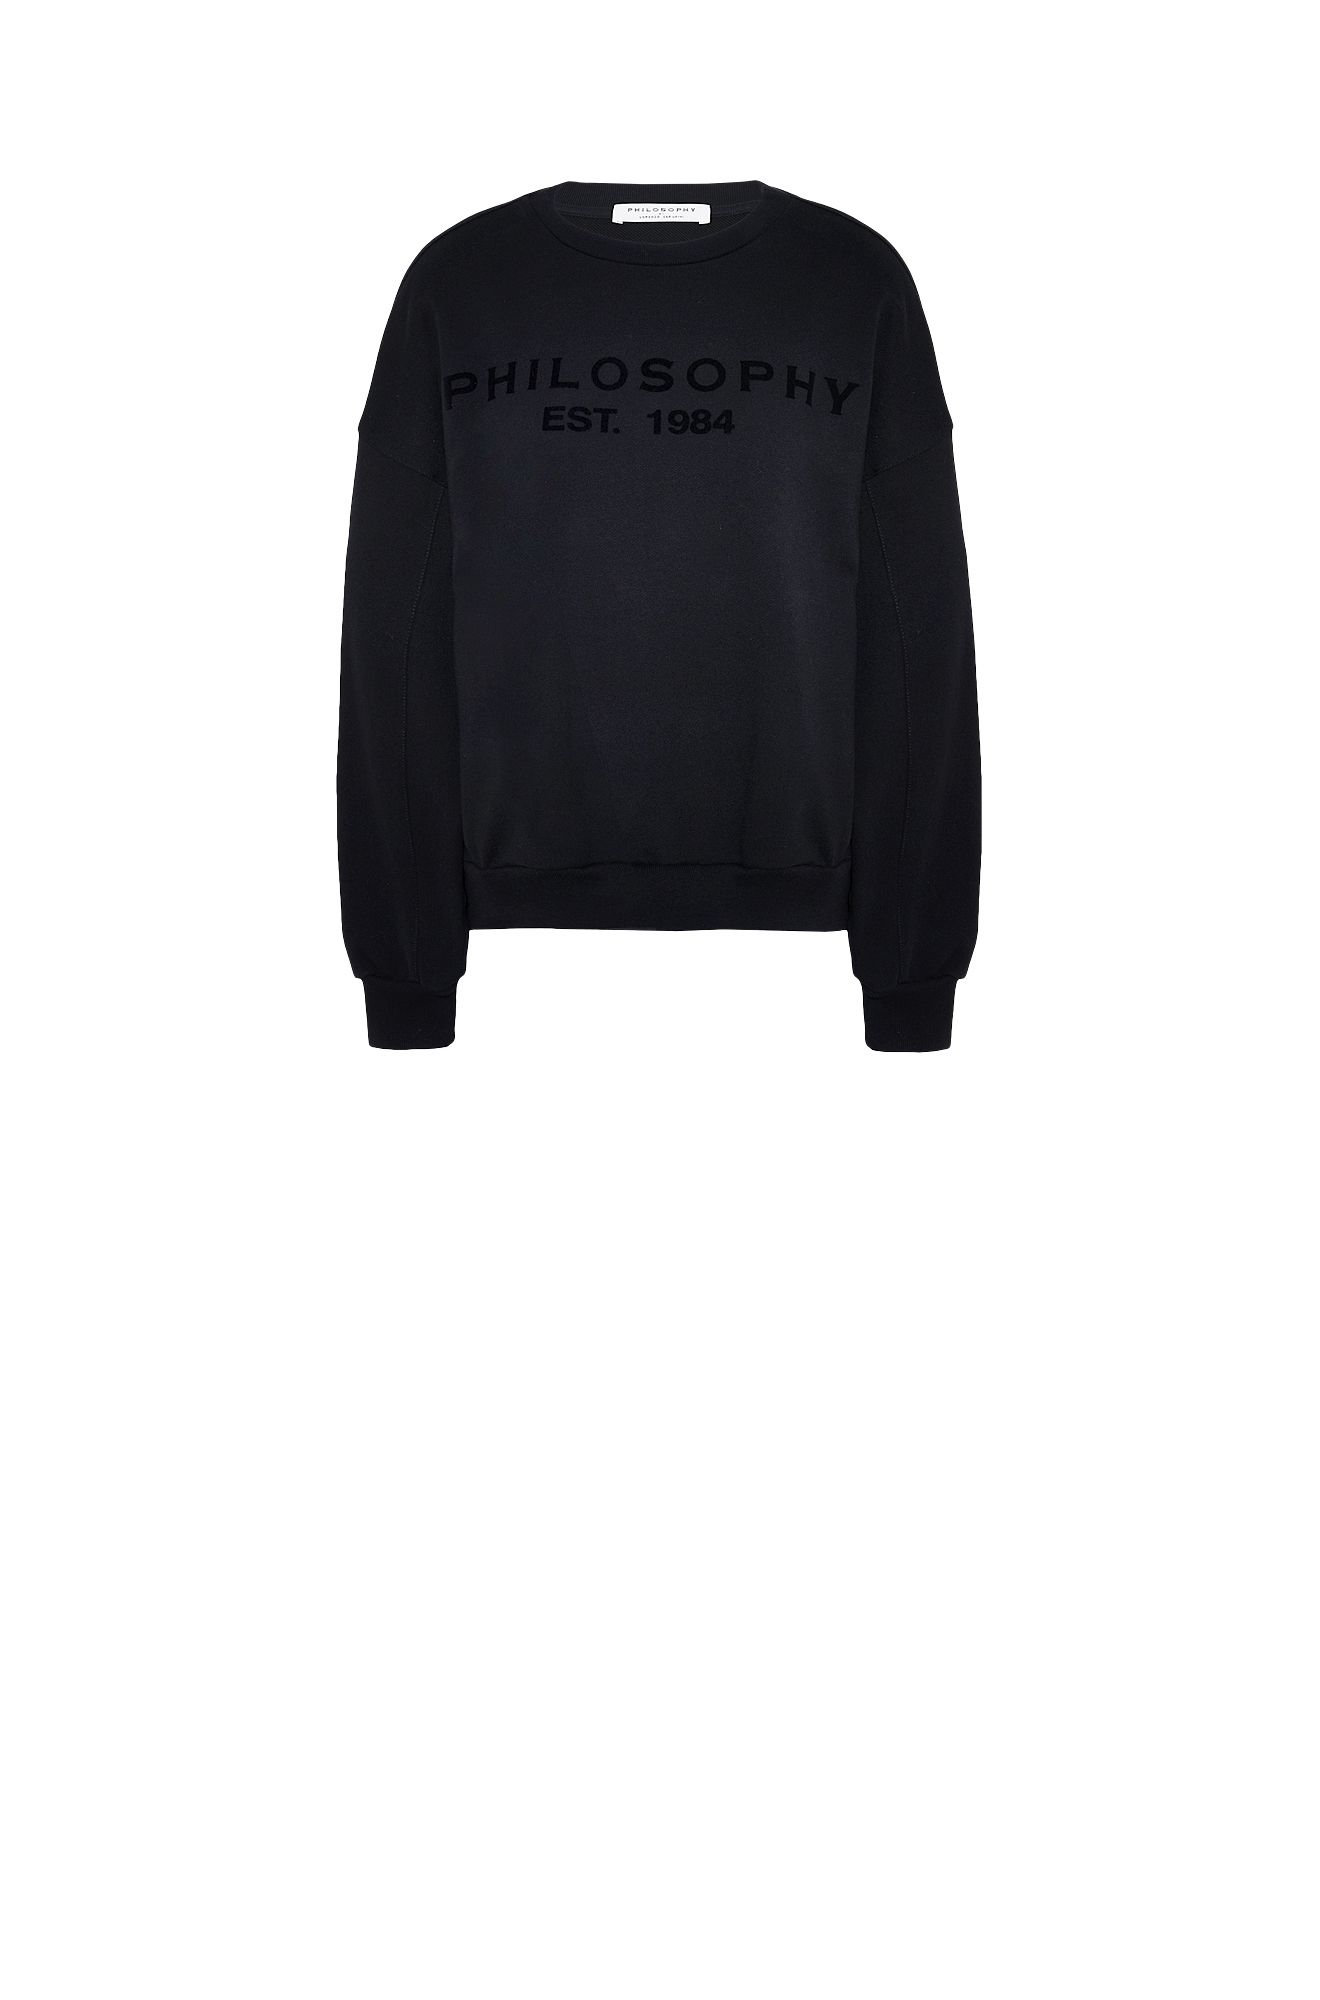 Black Philosophy sweatshirt